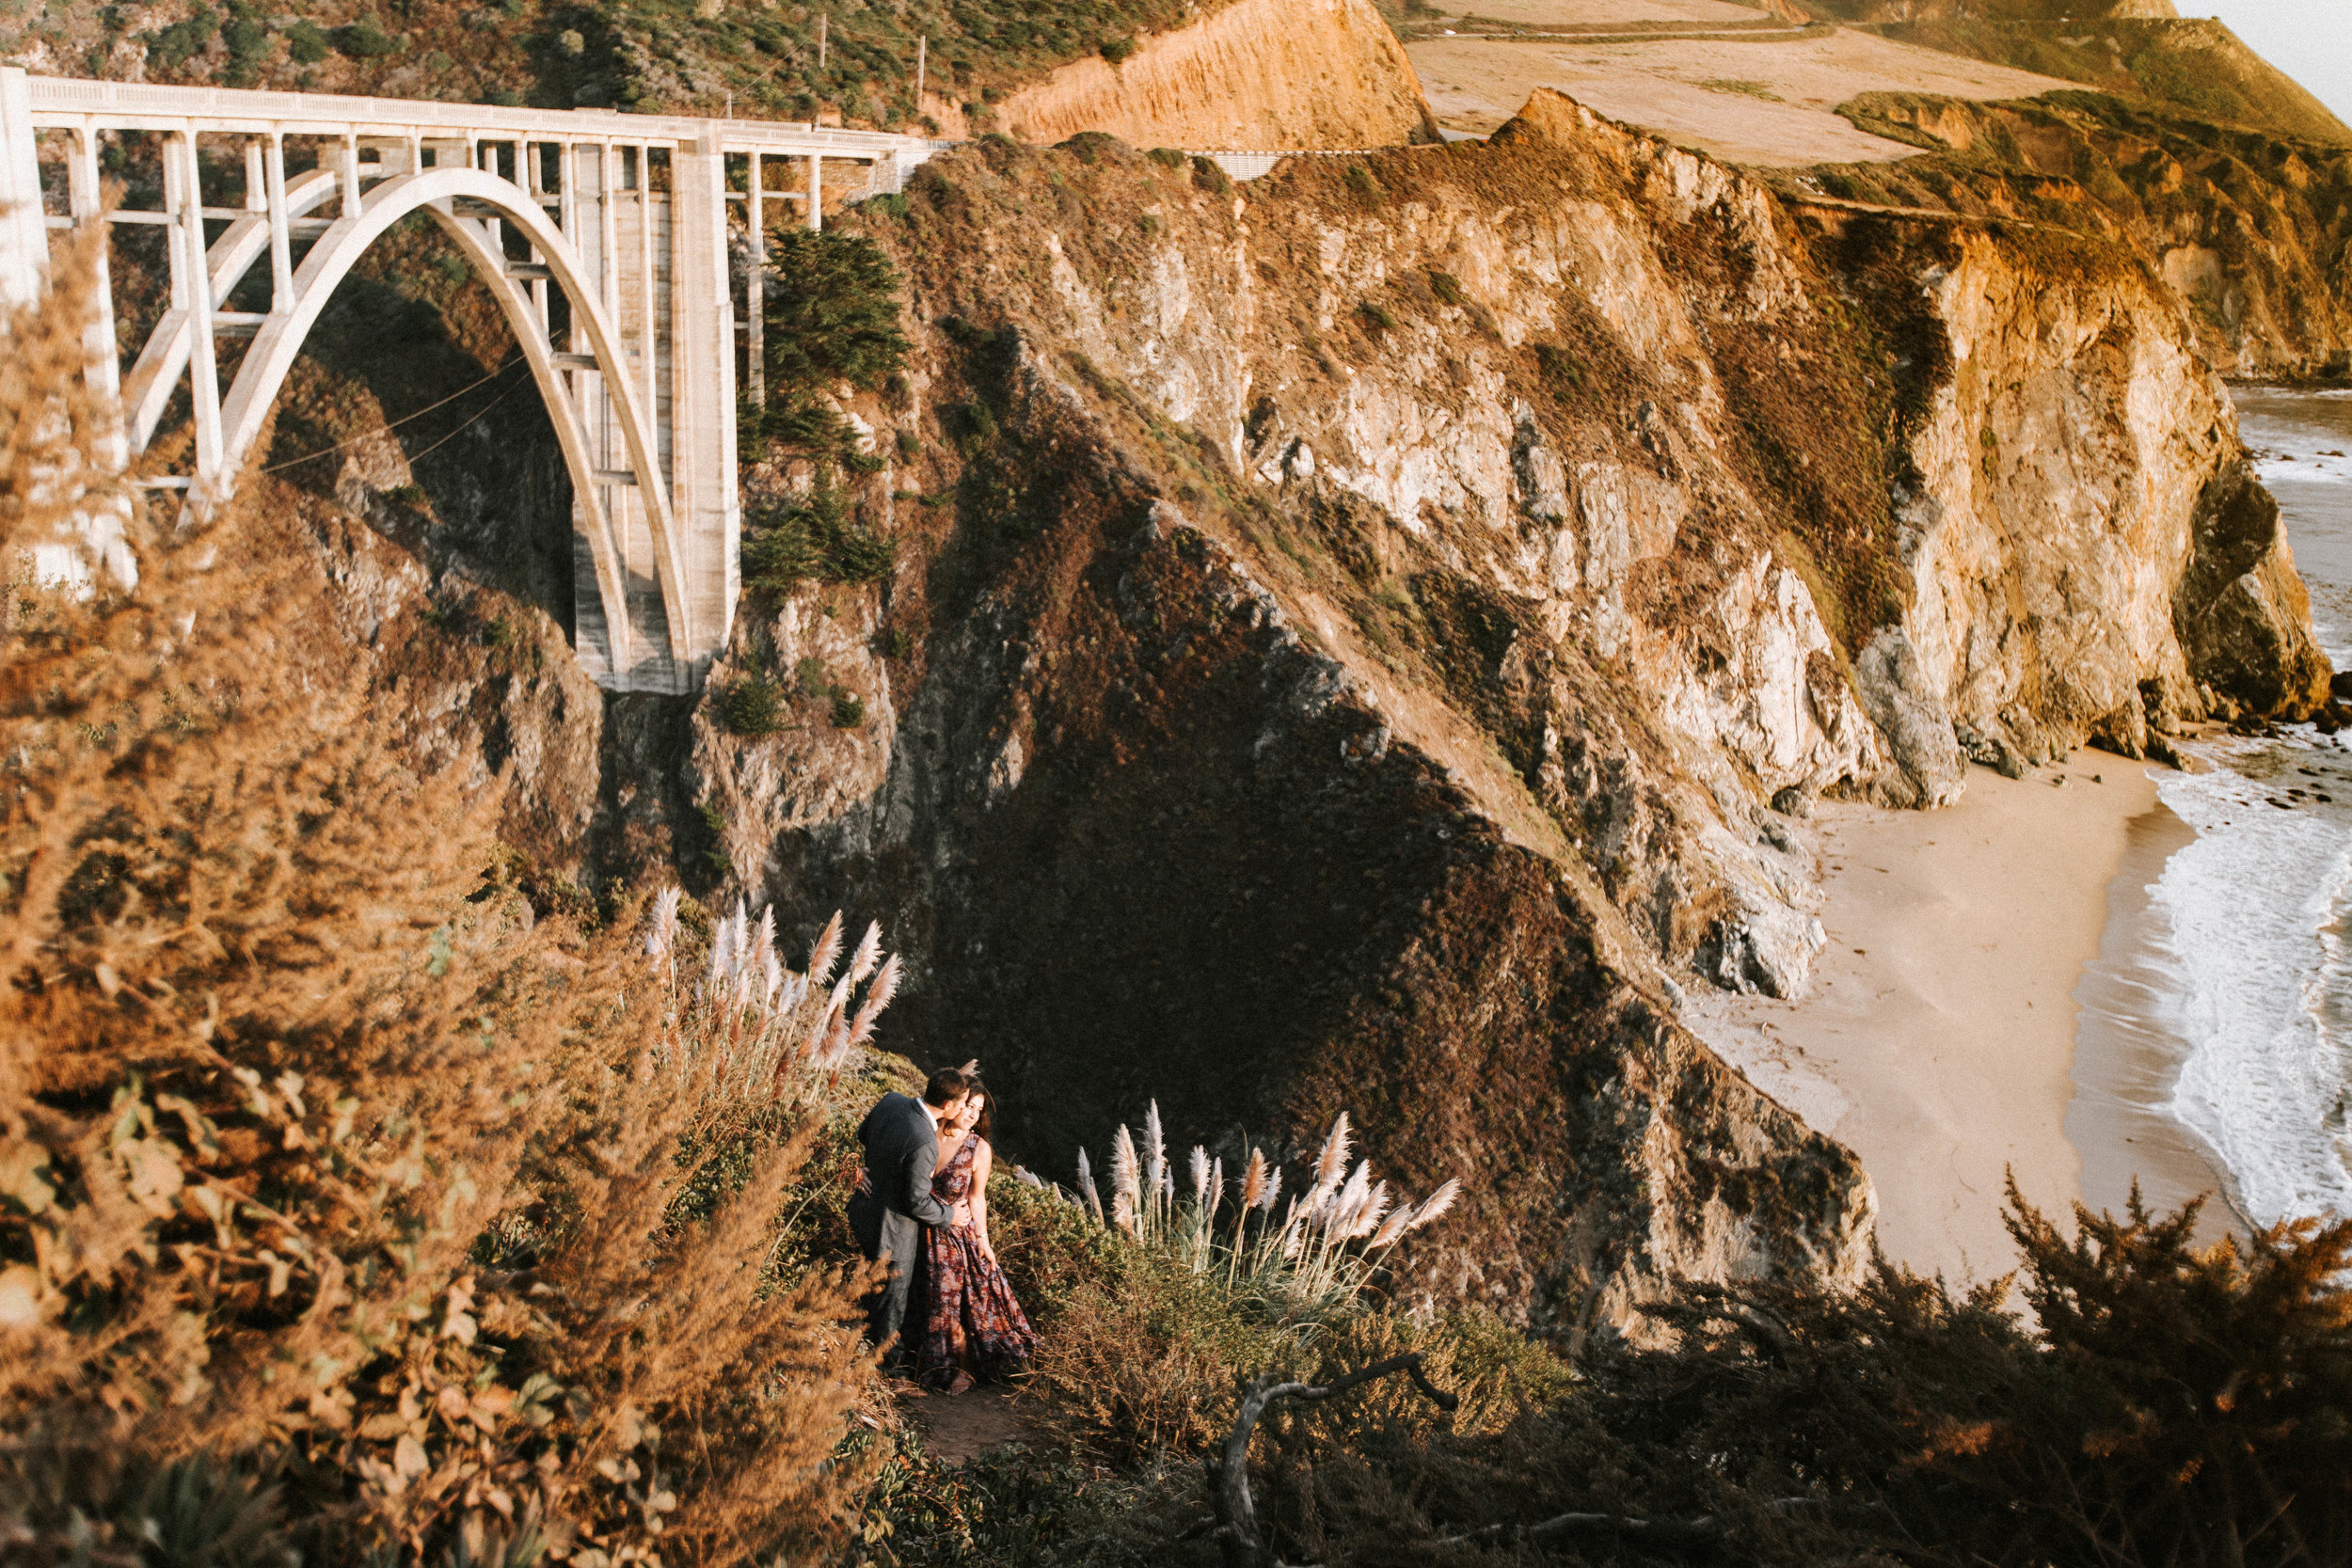 Nicole-Daacke-Photography-Big-Sur-California-Adventure-Golden-Beach-Sunset-authentic-candid-engagement-couples-session-29.jpg